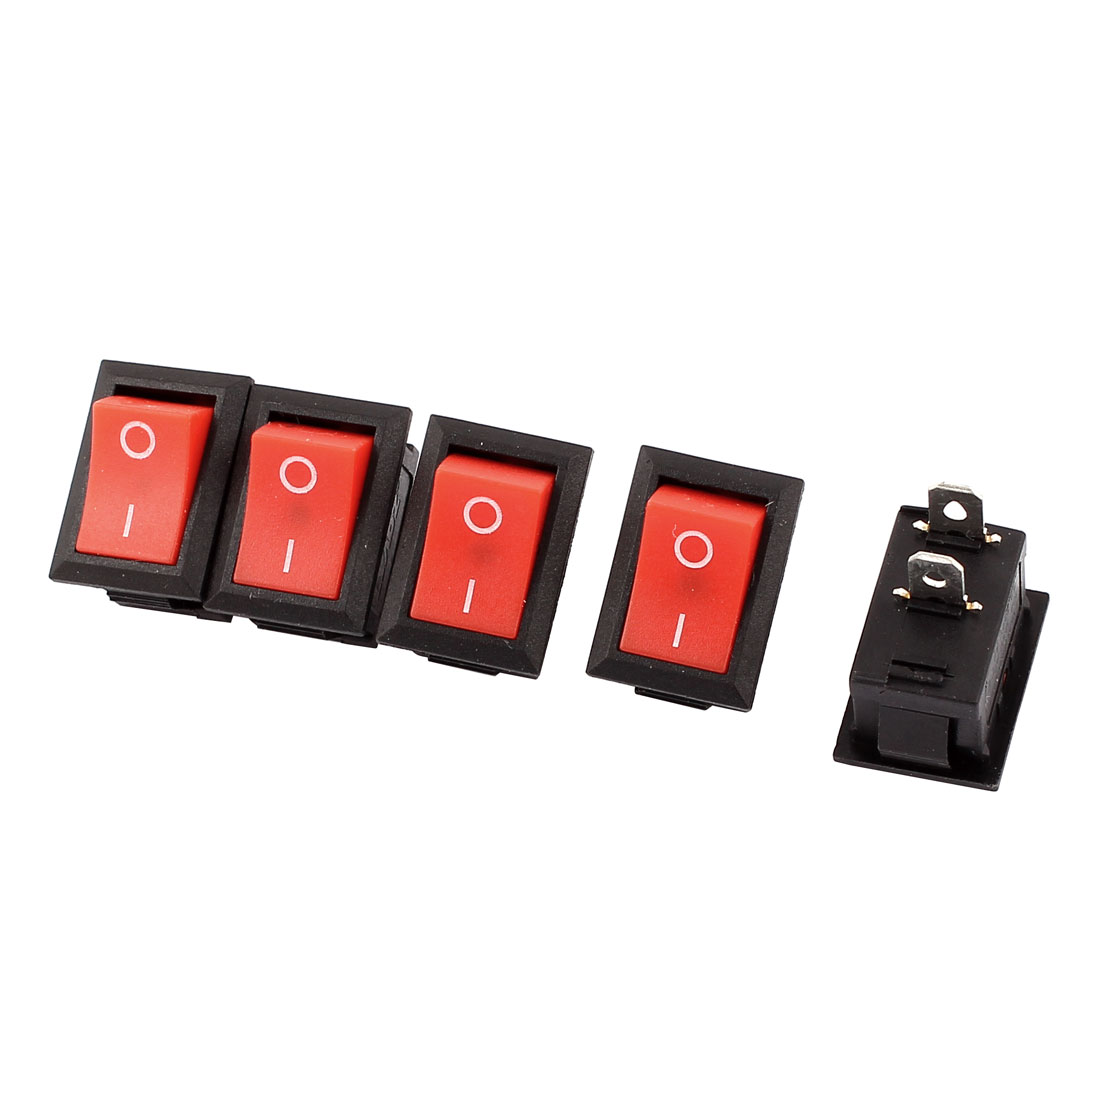 5PCS Red Button SPST Boat Rocker Switch Black AC 250V 5A 125V 10A